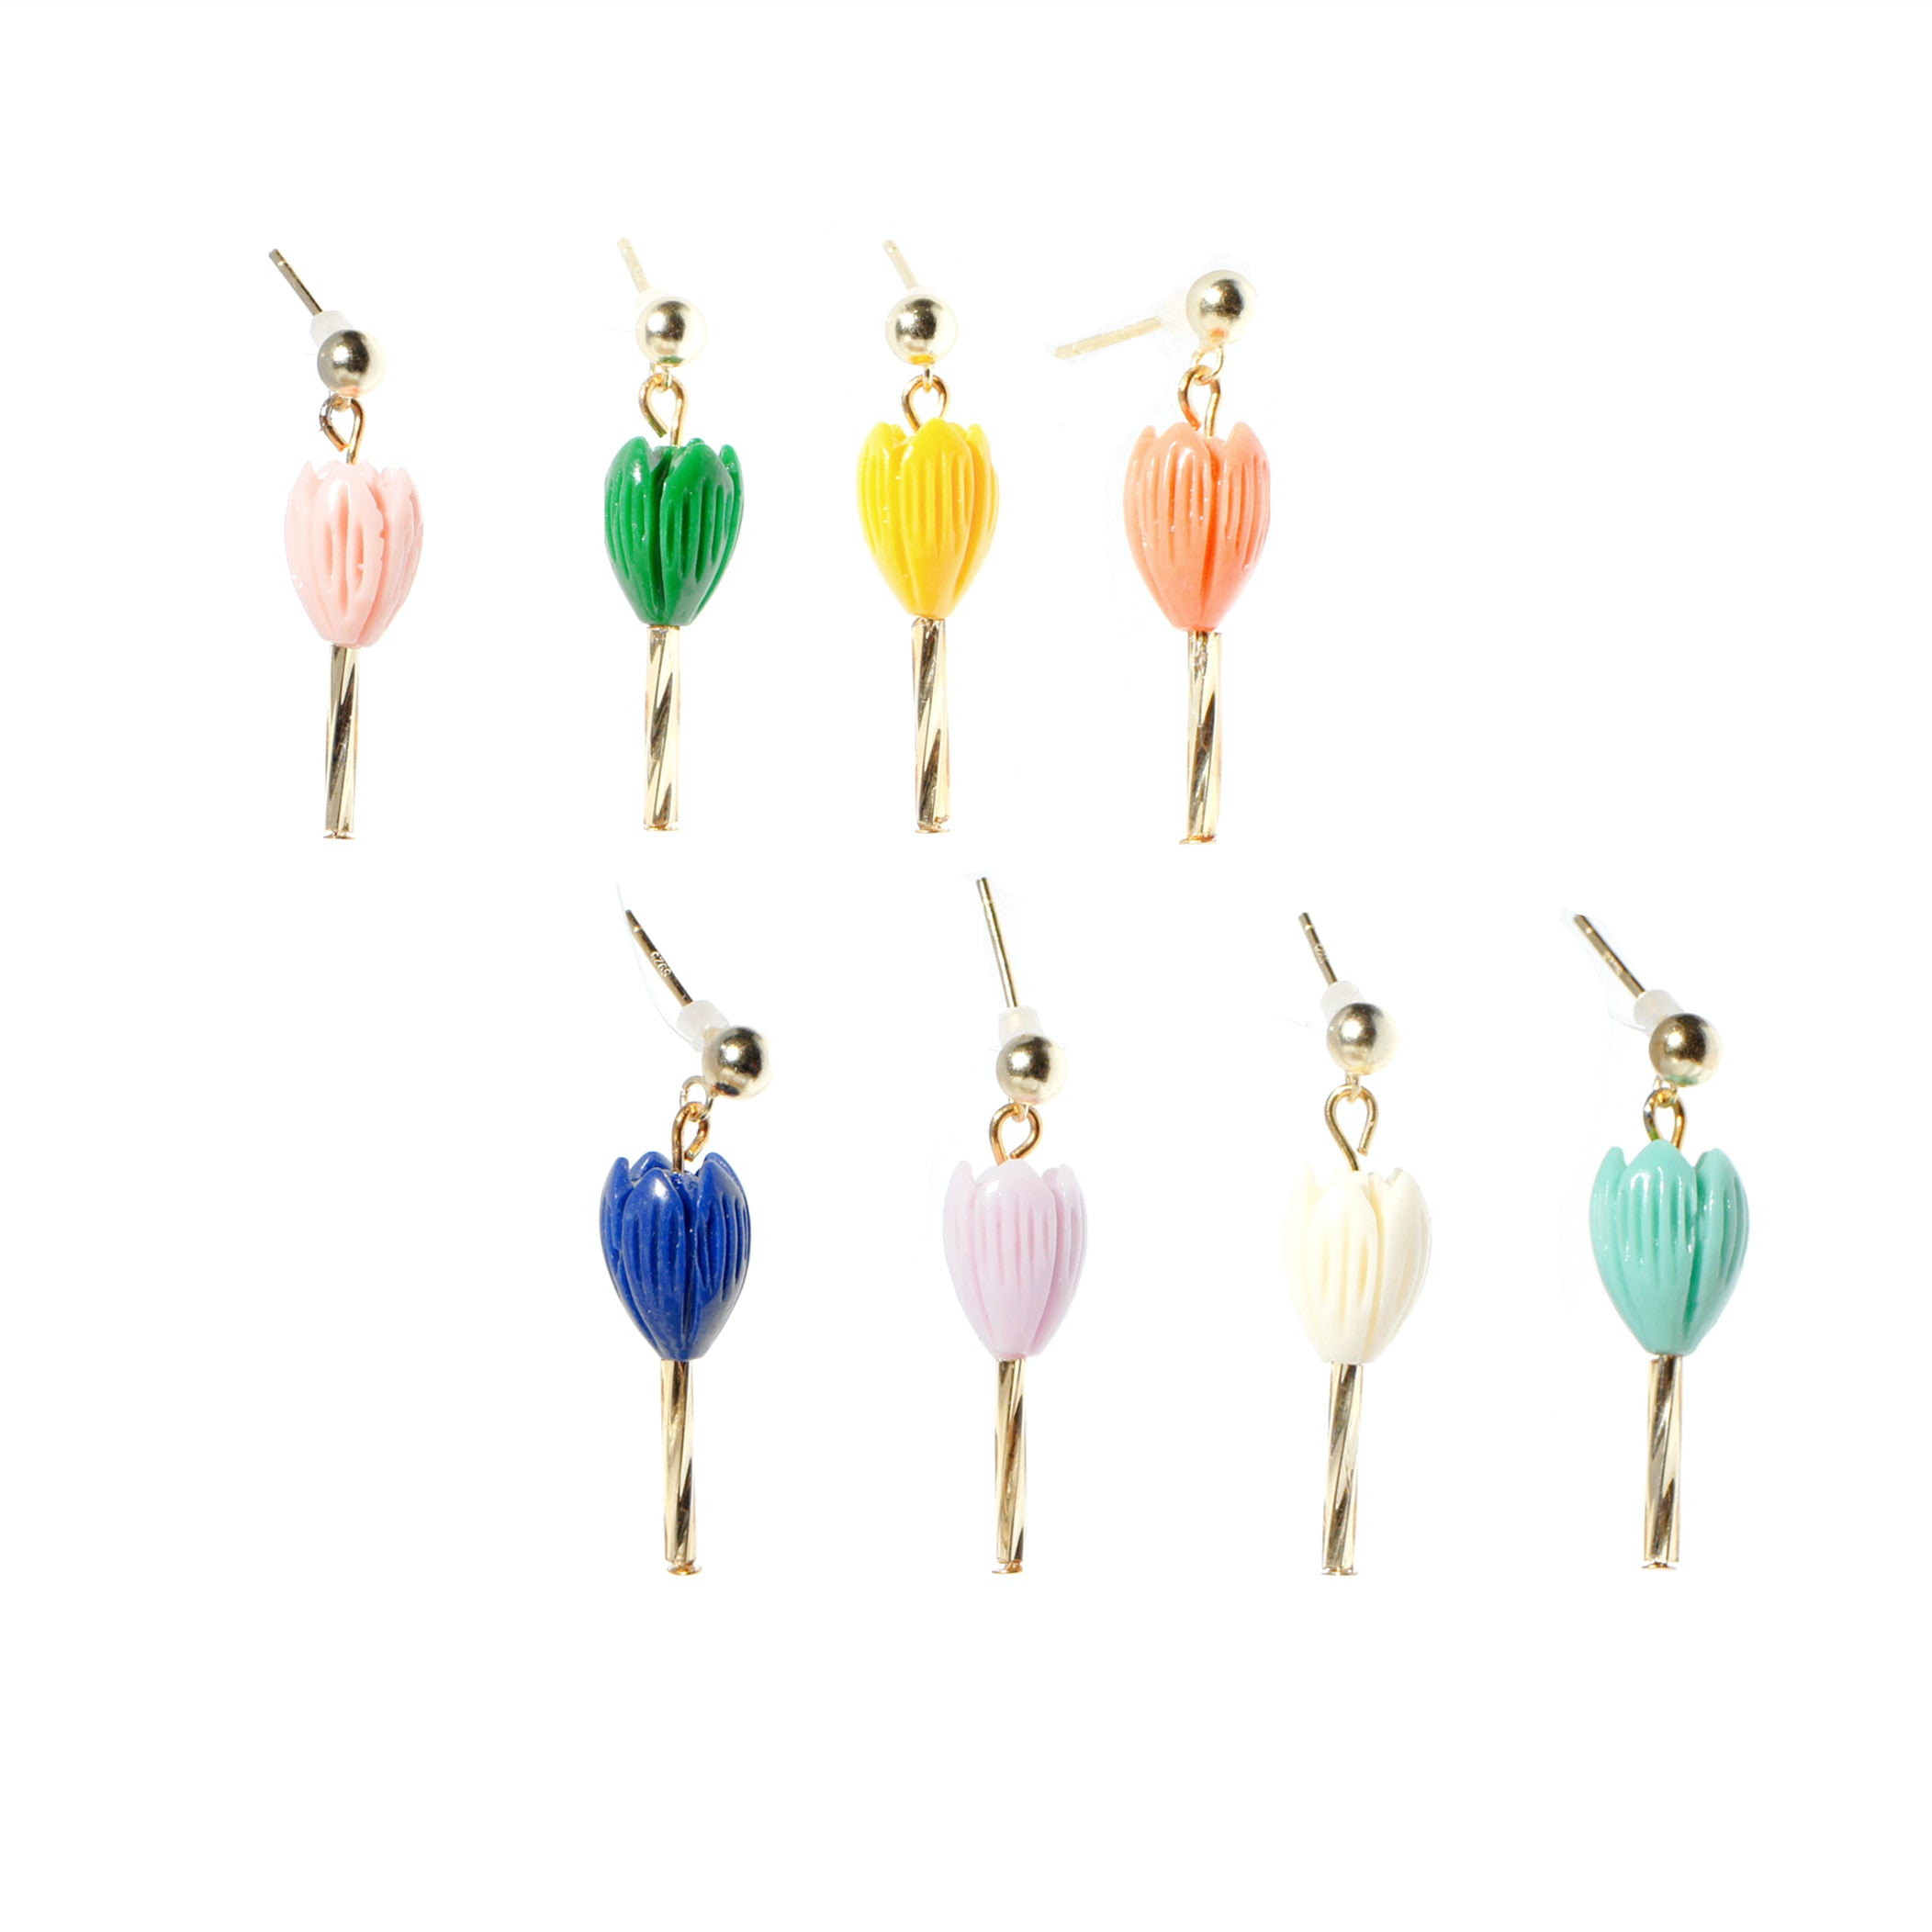 Tulip with Stem Single Earring w/18k Gold Vermeil Stud